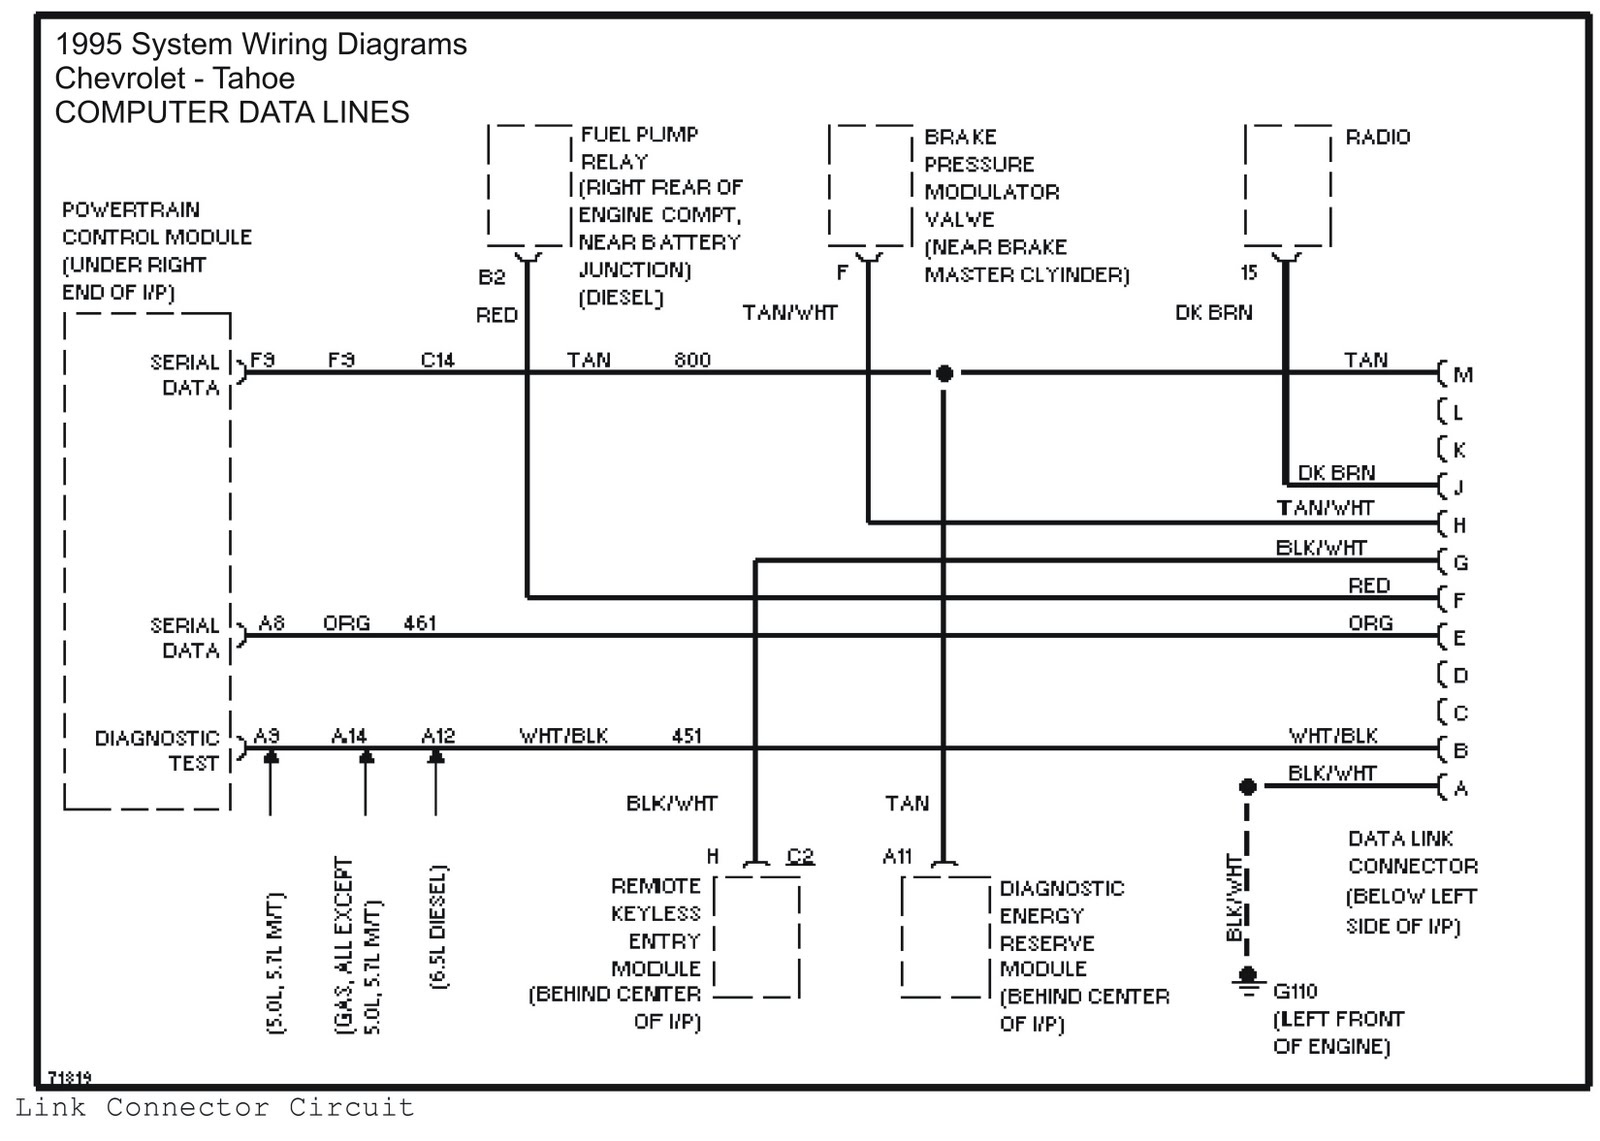 2004 tahoe ac diagram wiring diagram database2004 tahoe ac diagram wiring diagram nl chevy tahoe repair diagrams 2004 tahoe ac diagram